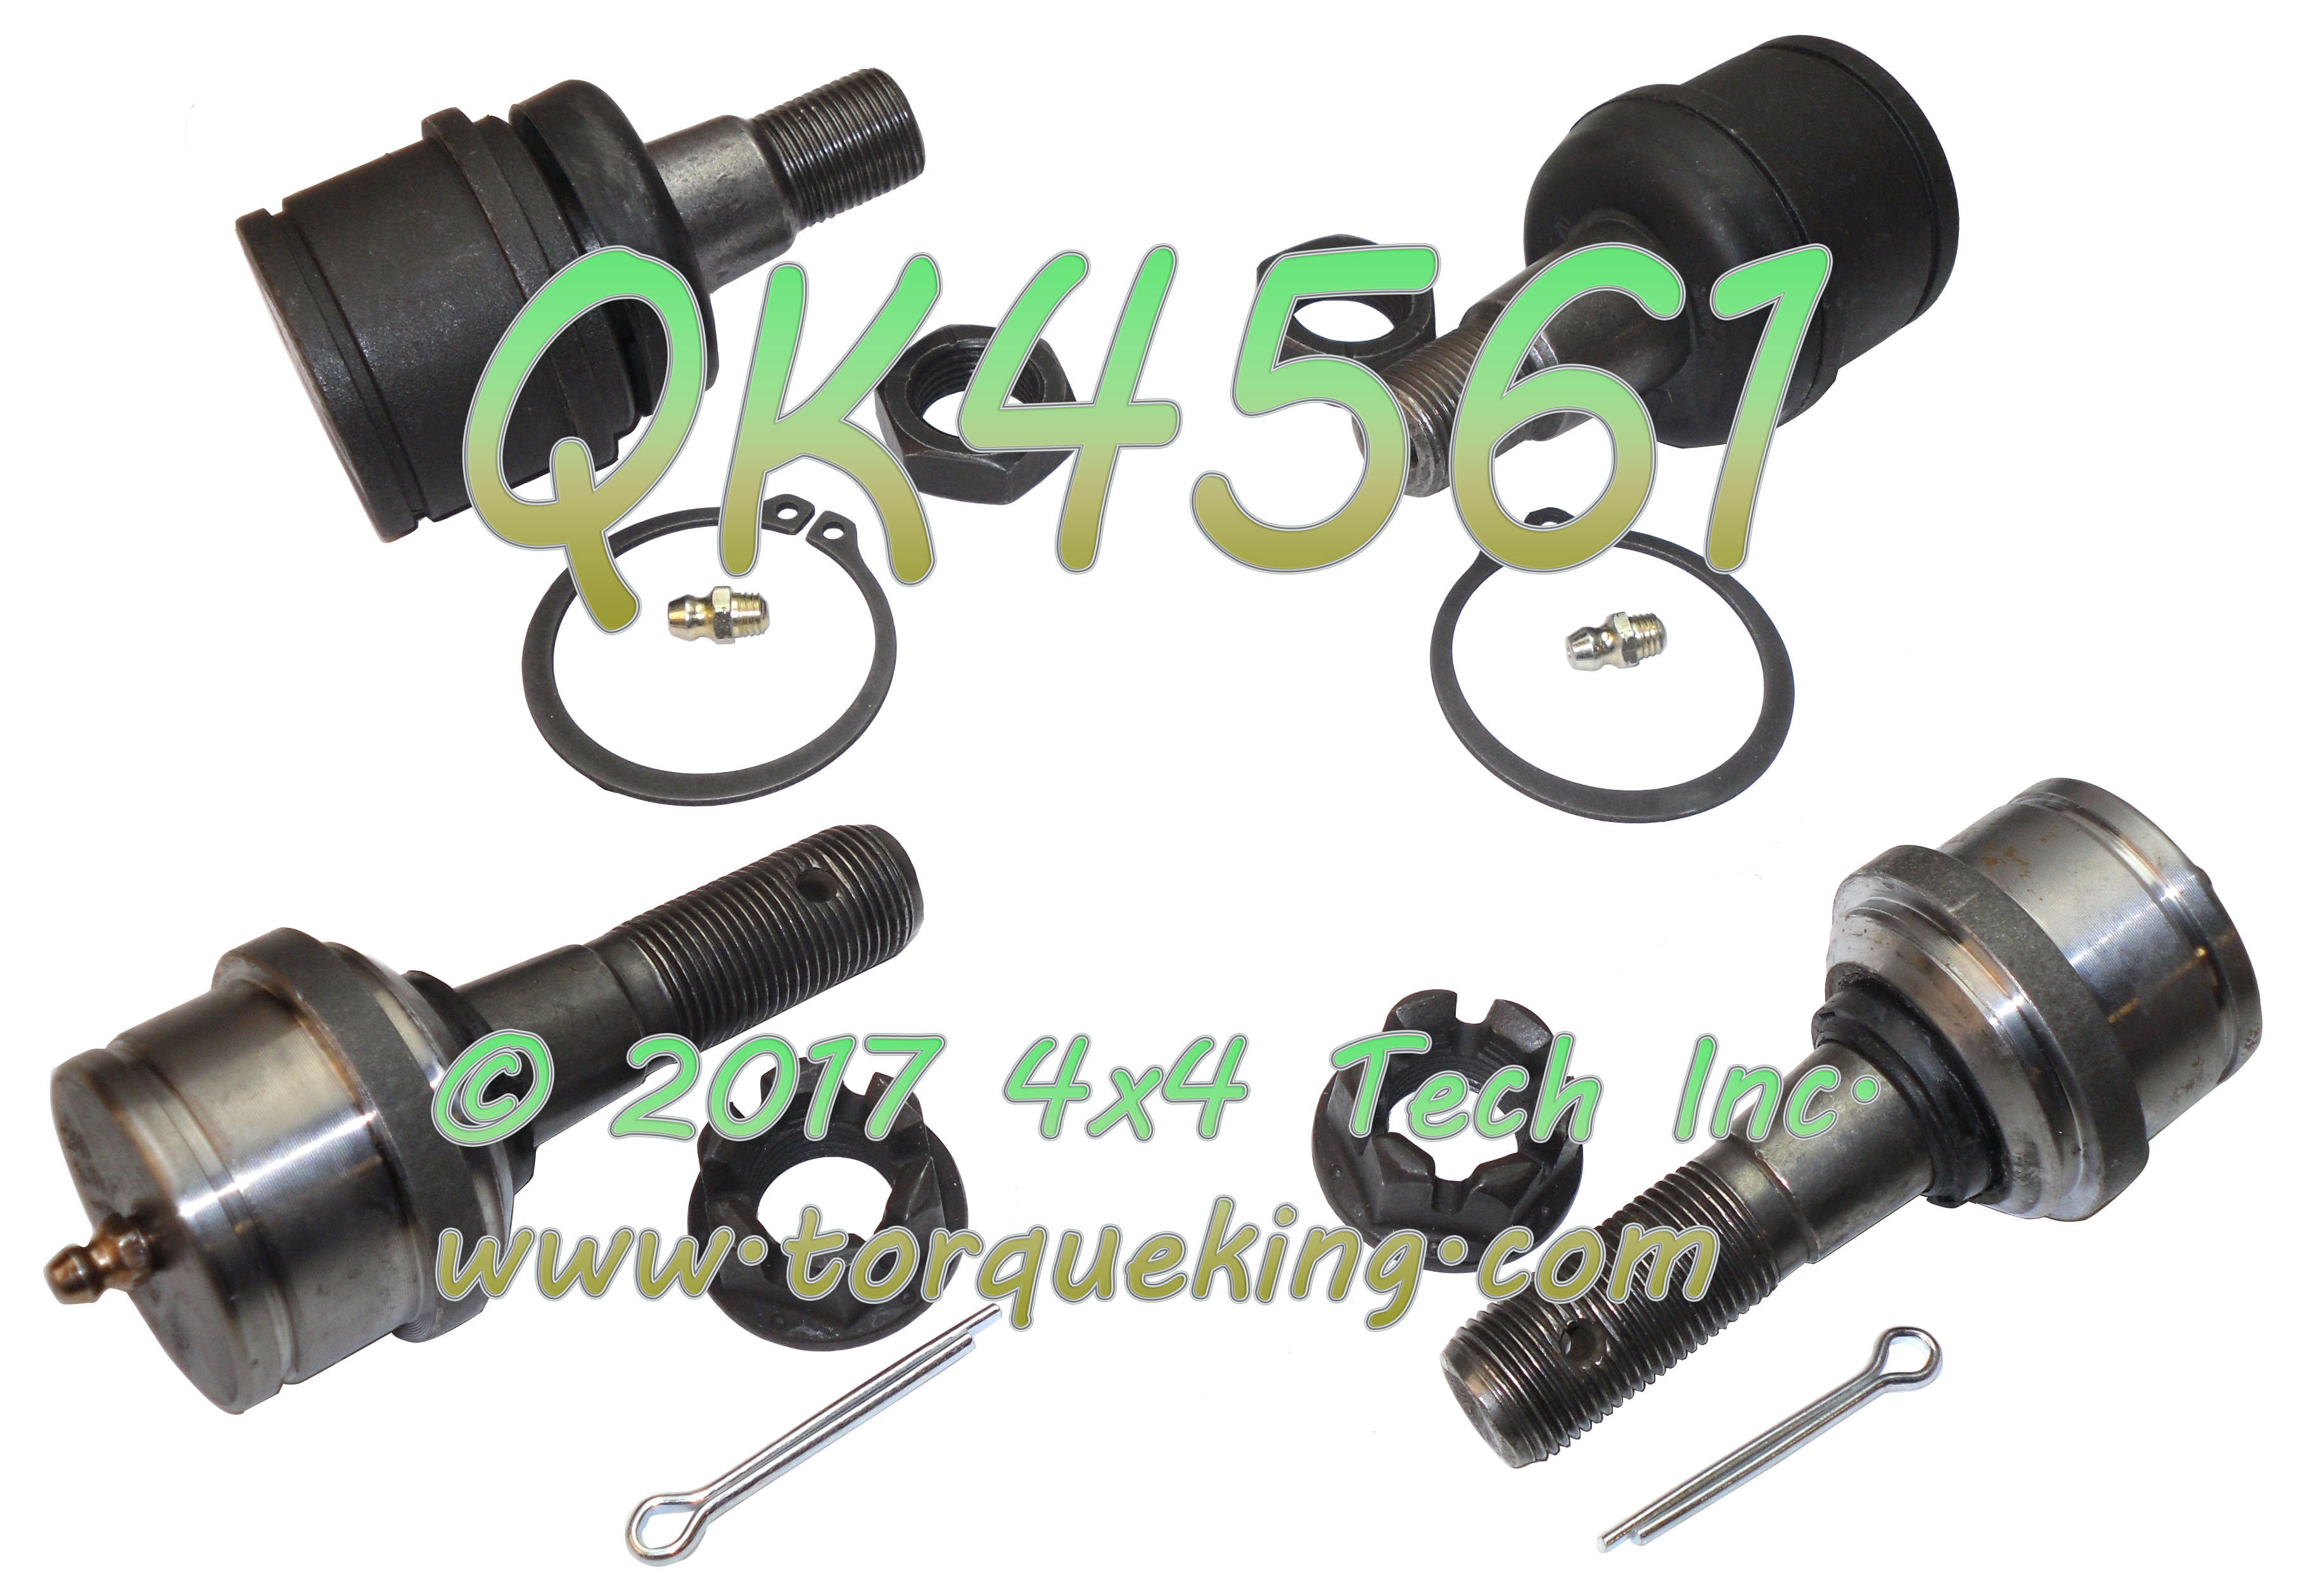 Ford50ifs1983 1997 Torque King 4x4 1983 Ford F 250 Dana 50 Ifs Front Axles Includes 2 Upper And Lower Greaseable Ball Joints With Hardware For All 19855 350